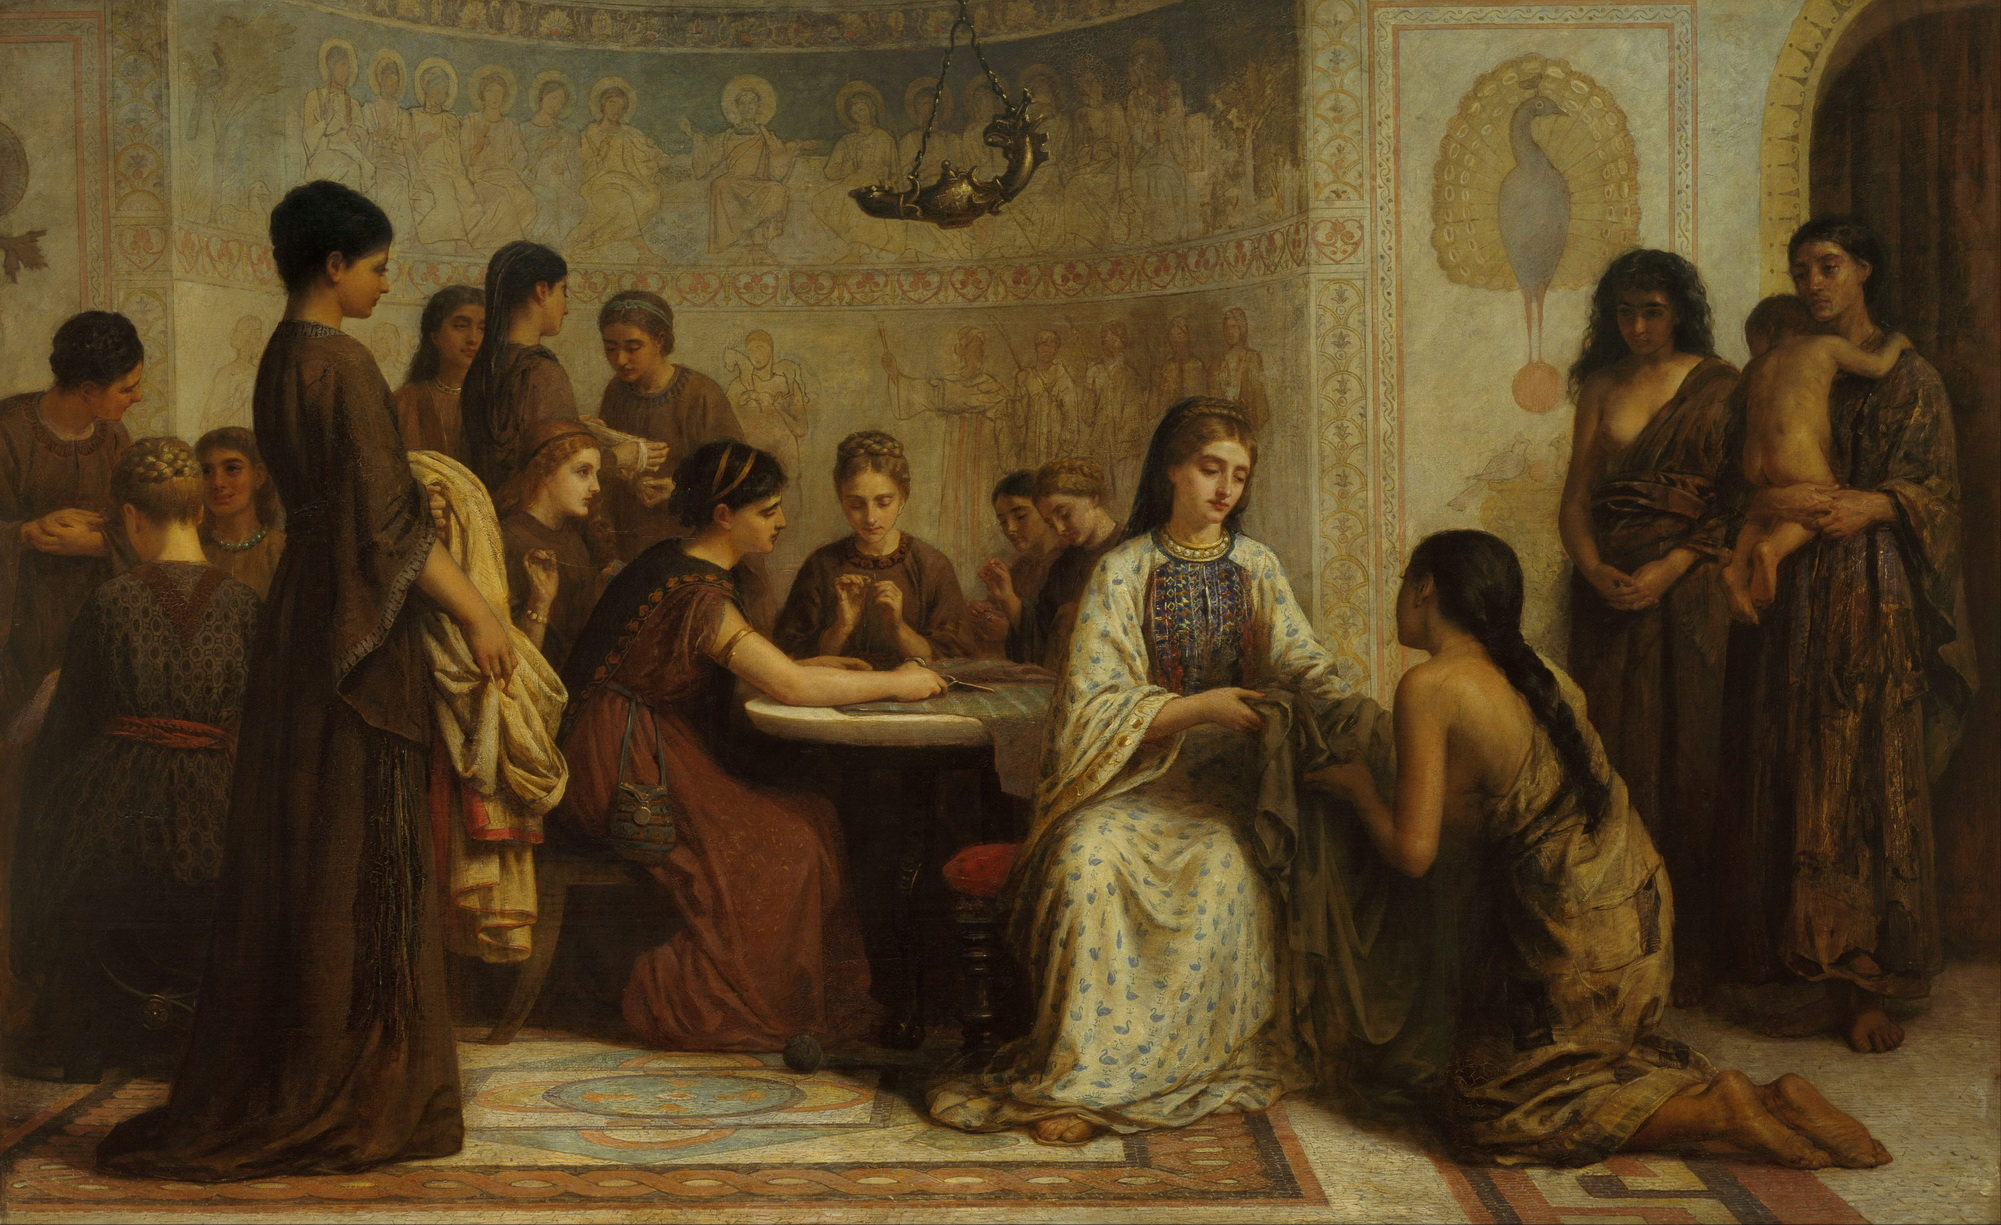 Edwin Long - A Dorcas meeting in the 6th century-2000